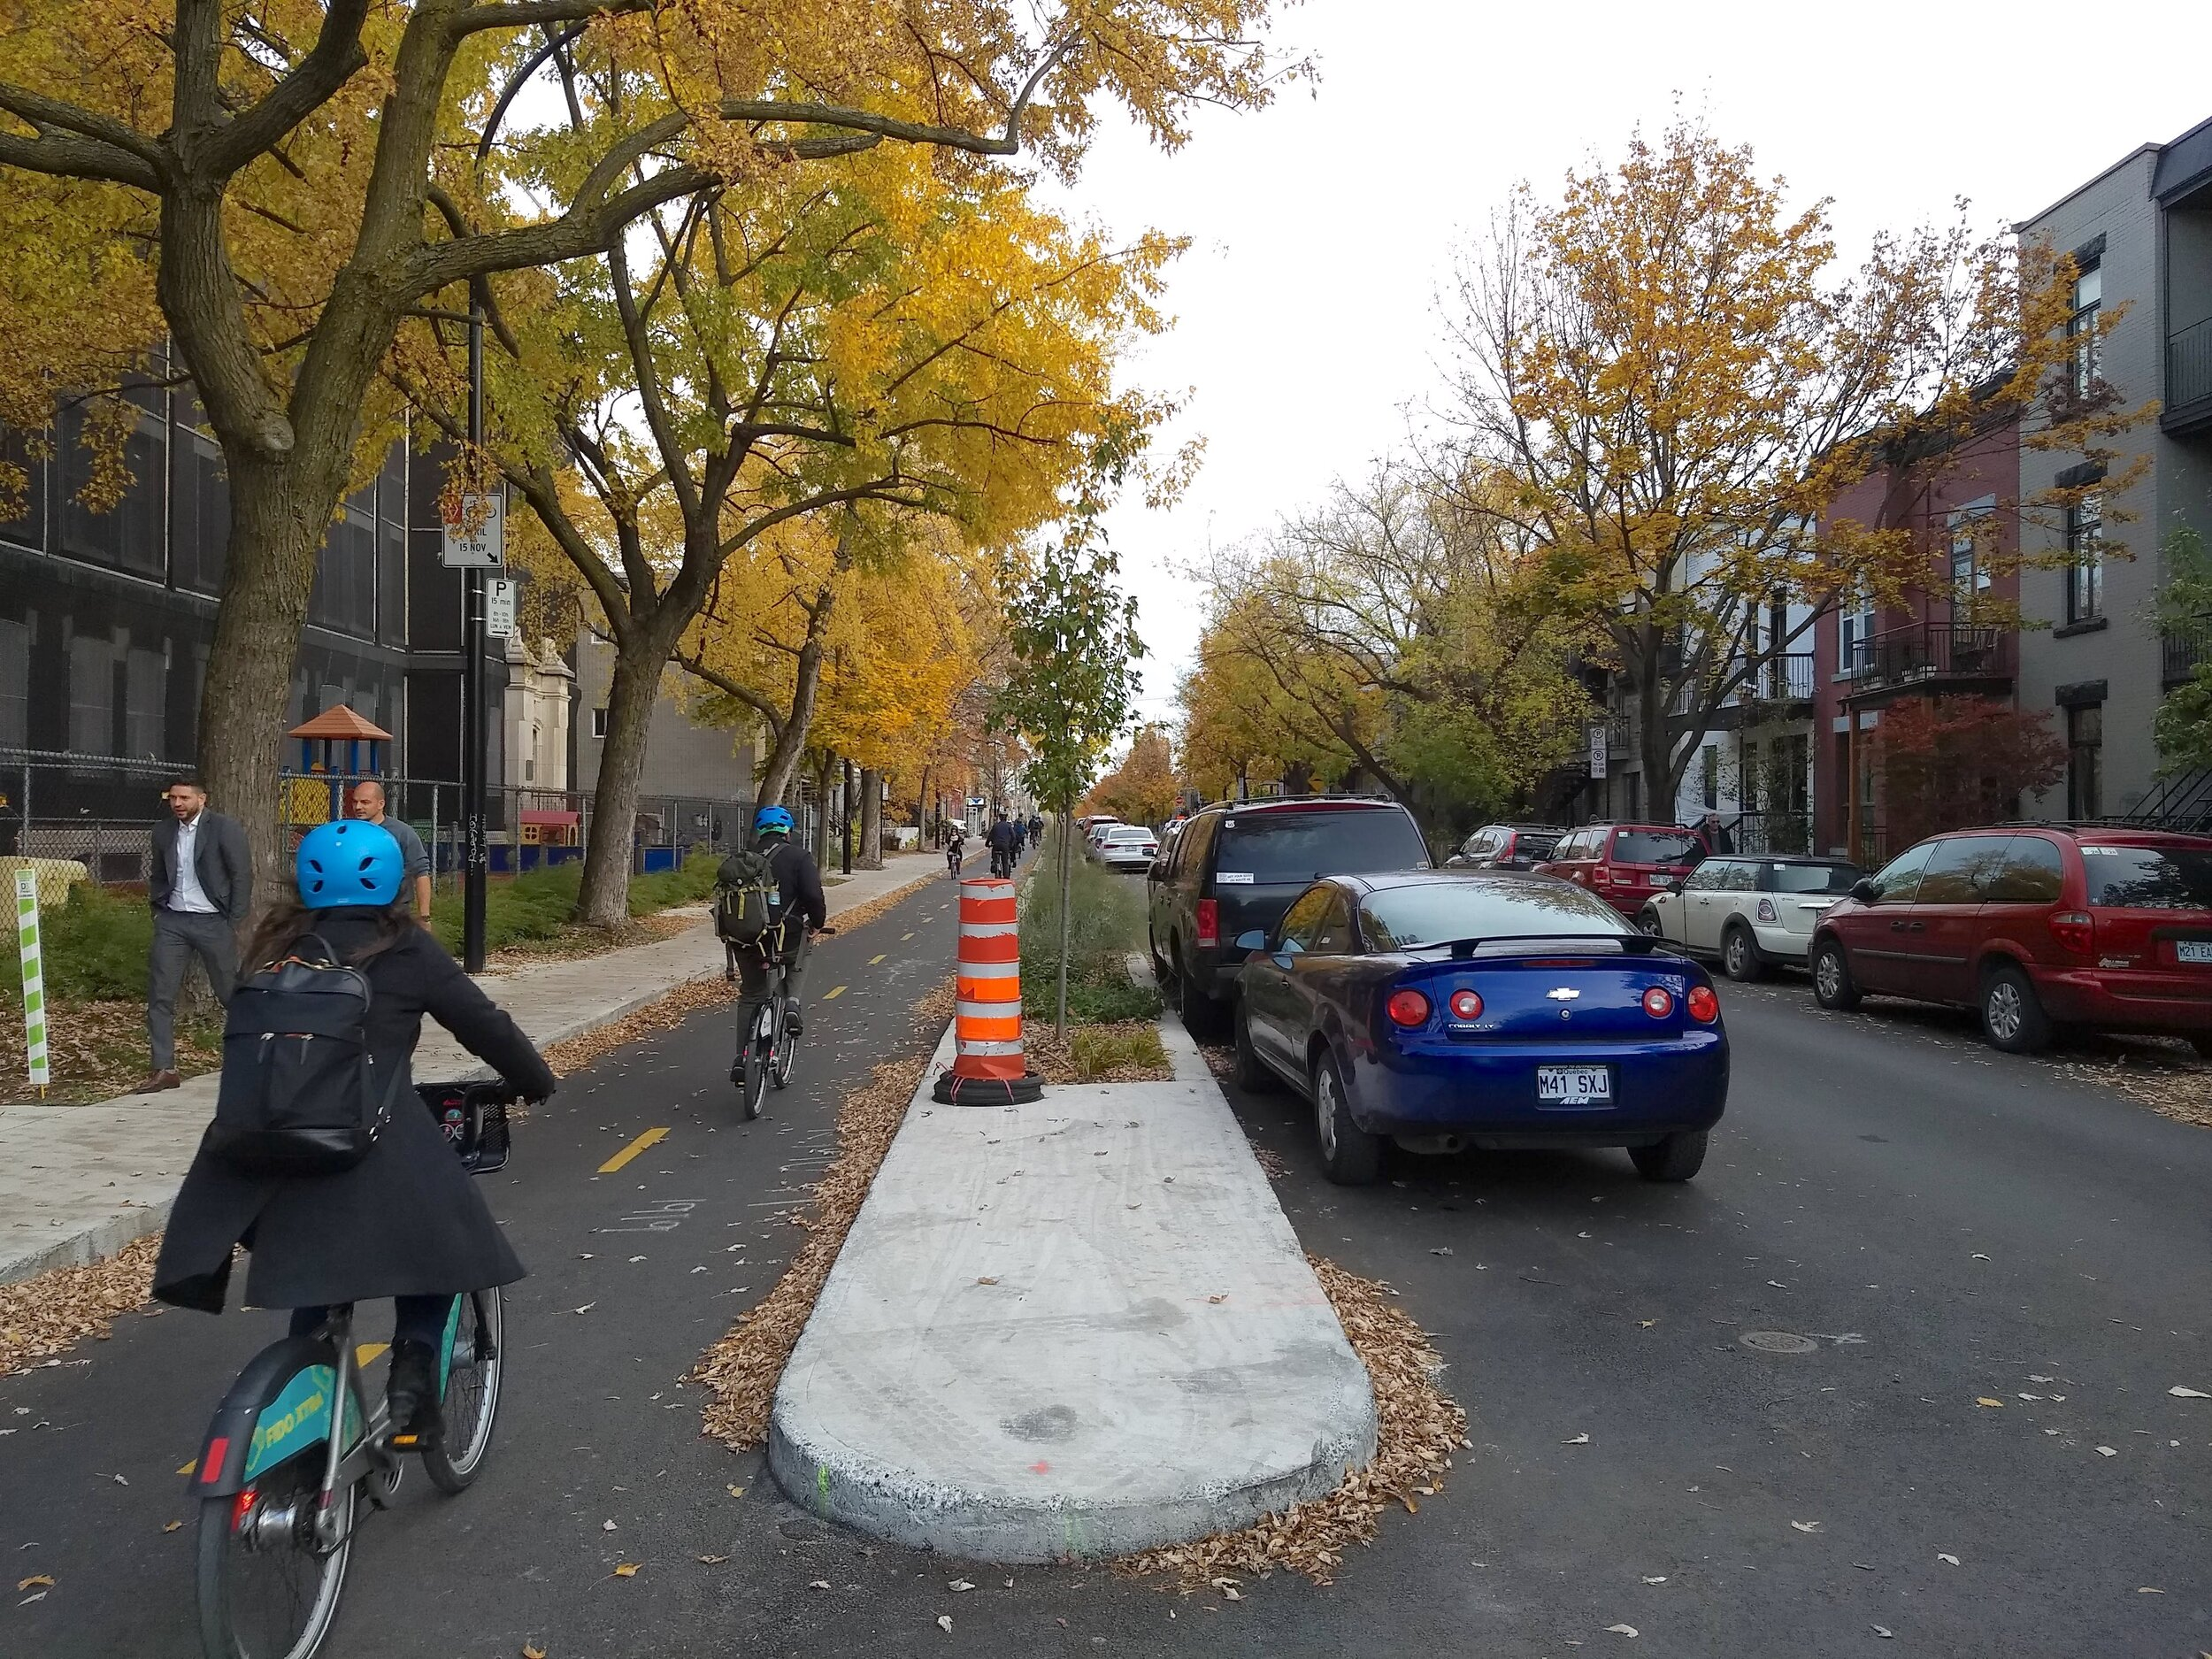 Ten years from now, Montreal would like 15% of all trips in the city to be made by bike. An effective way to get a broader range of people on bikes is to protect them from moving traffic with a barrier. Photo: Jon Kaplan